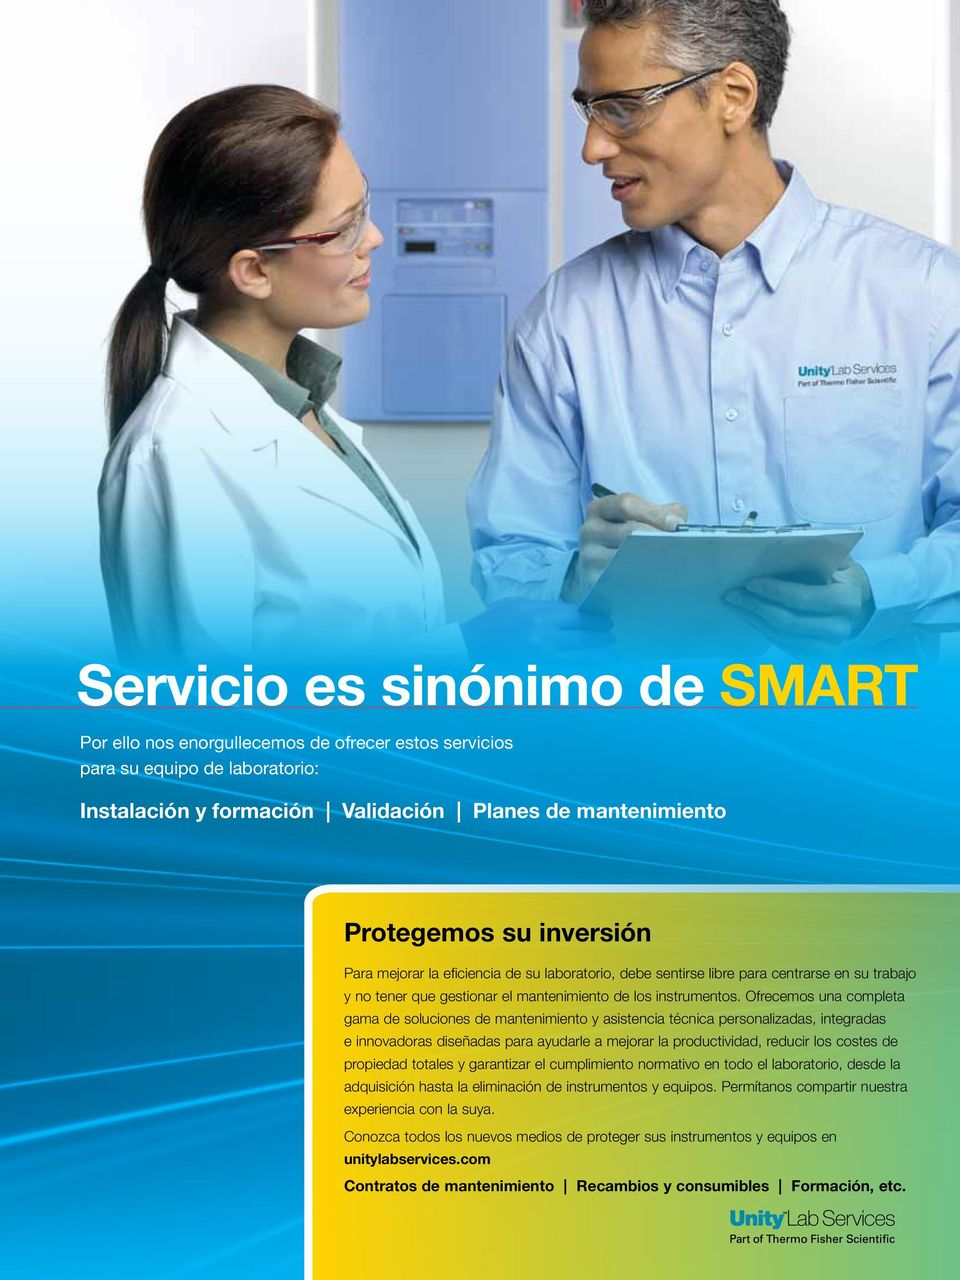 We provide a complete portfolio Protegemos su inversión of customized, integrated and innovative services and support solutions designed to help you improve productivity, reduce total cost of